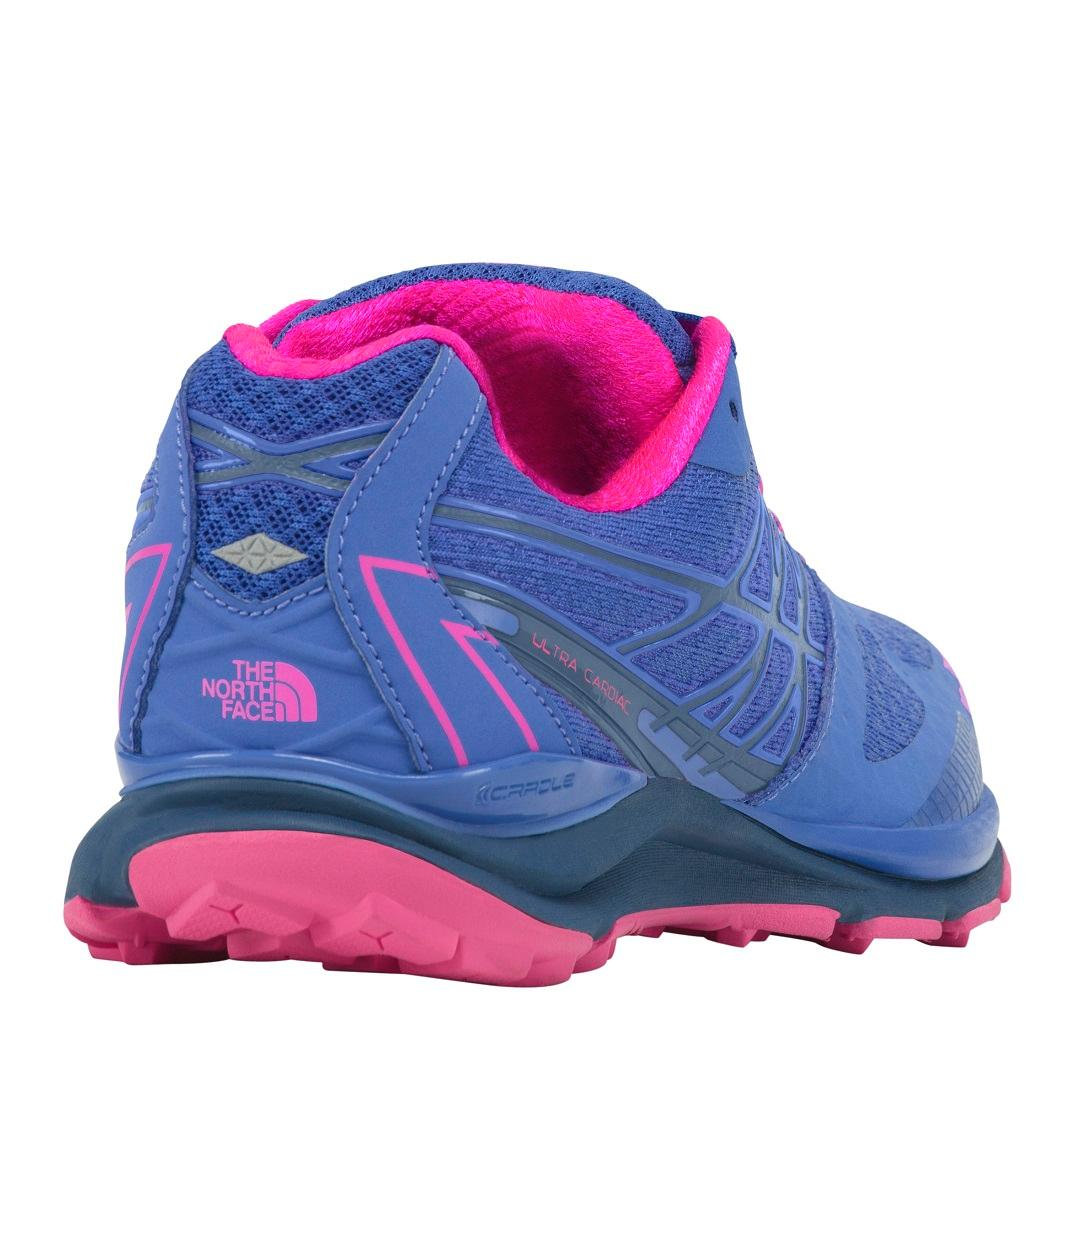 f6892ea02 The North Face Women's Ultra Cardiac Running Shoes